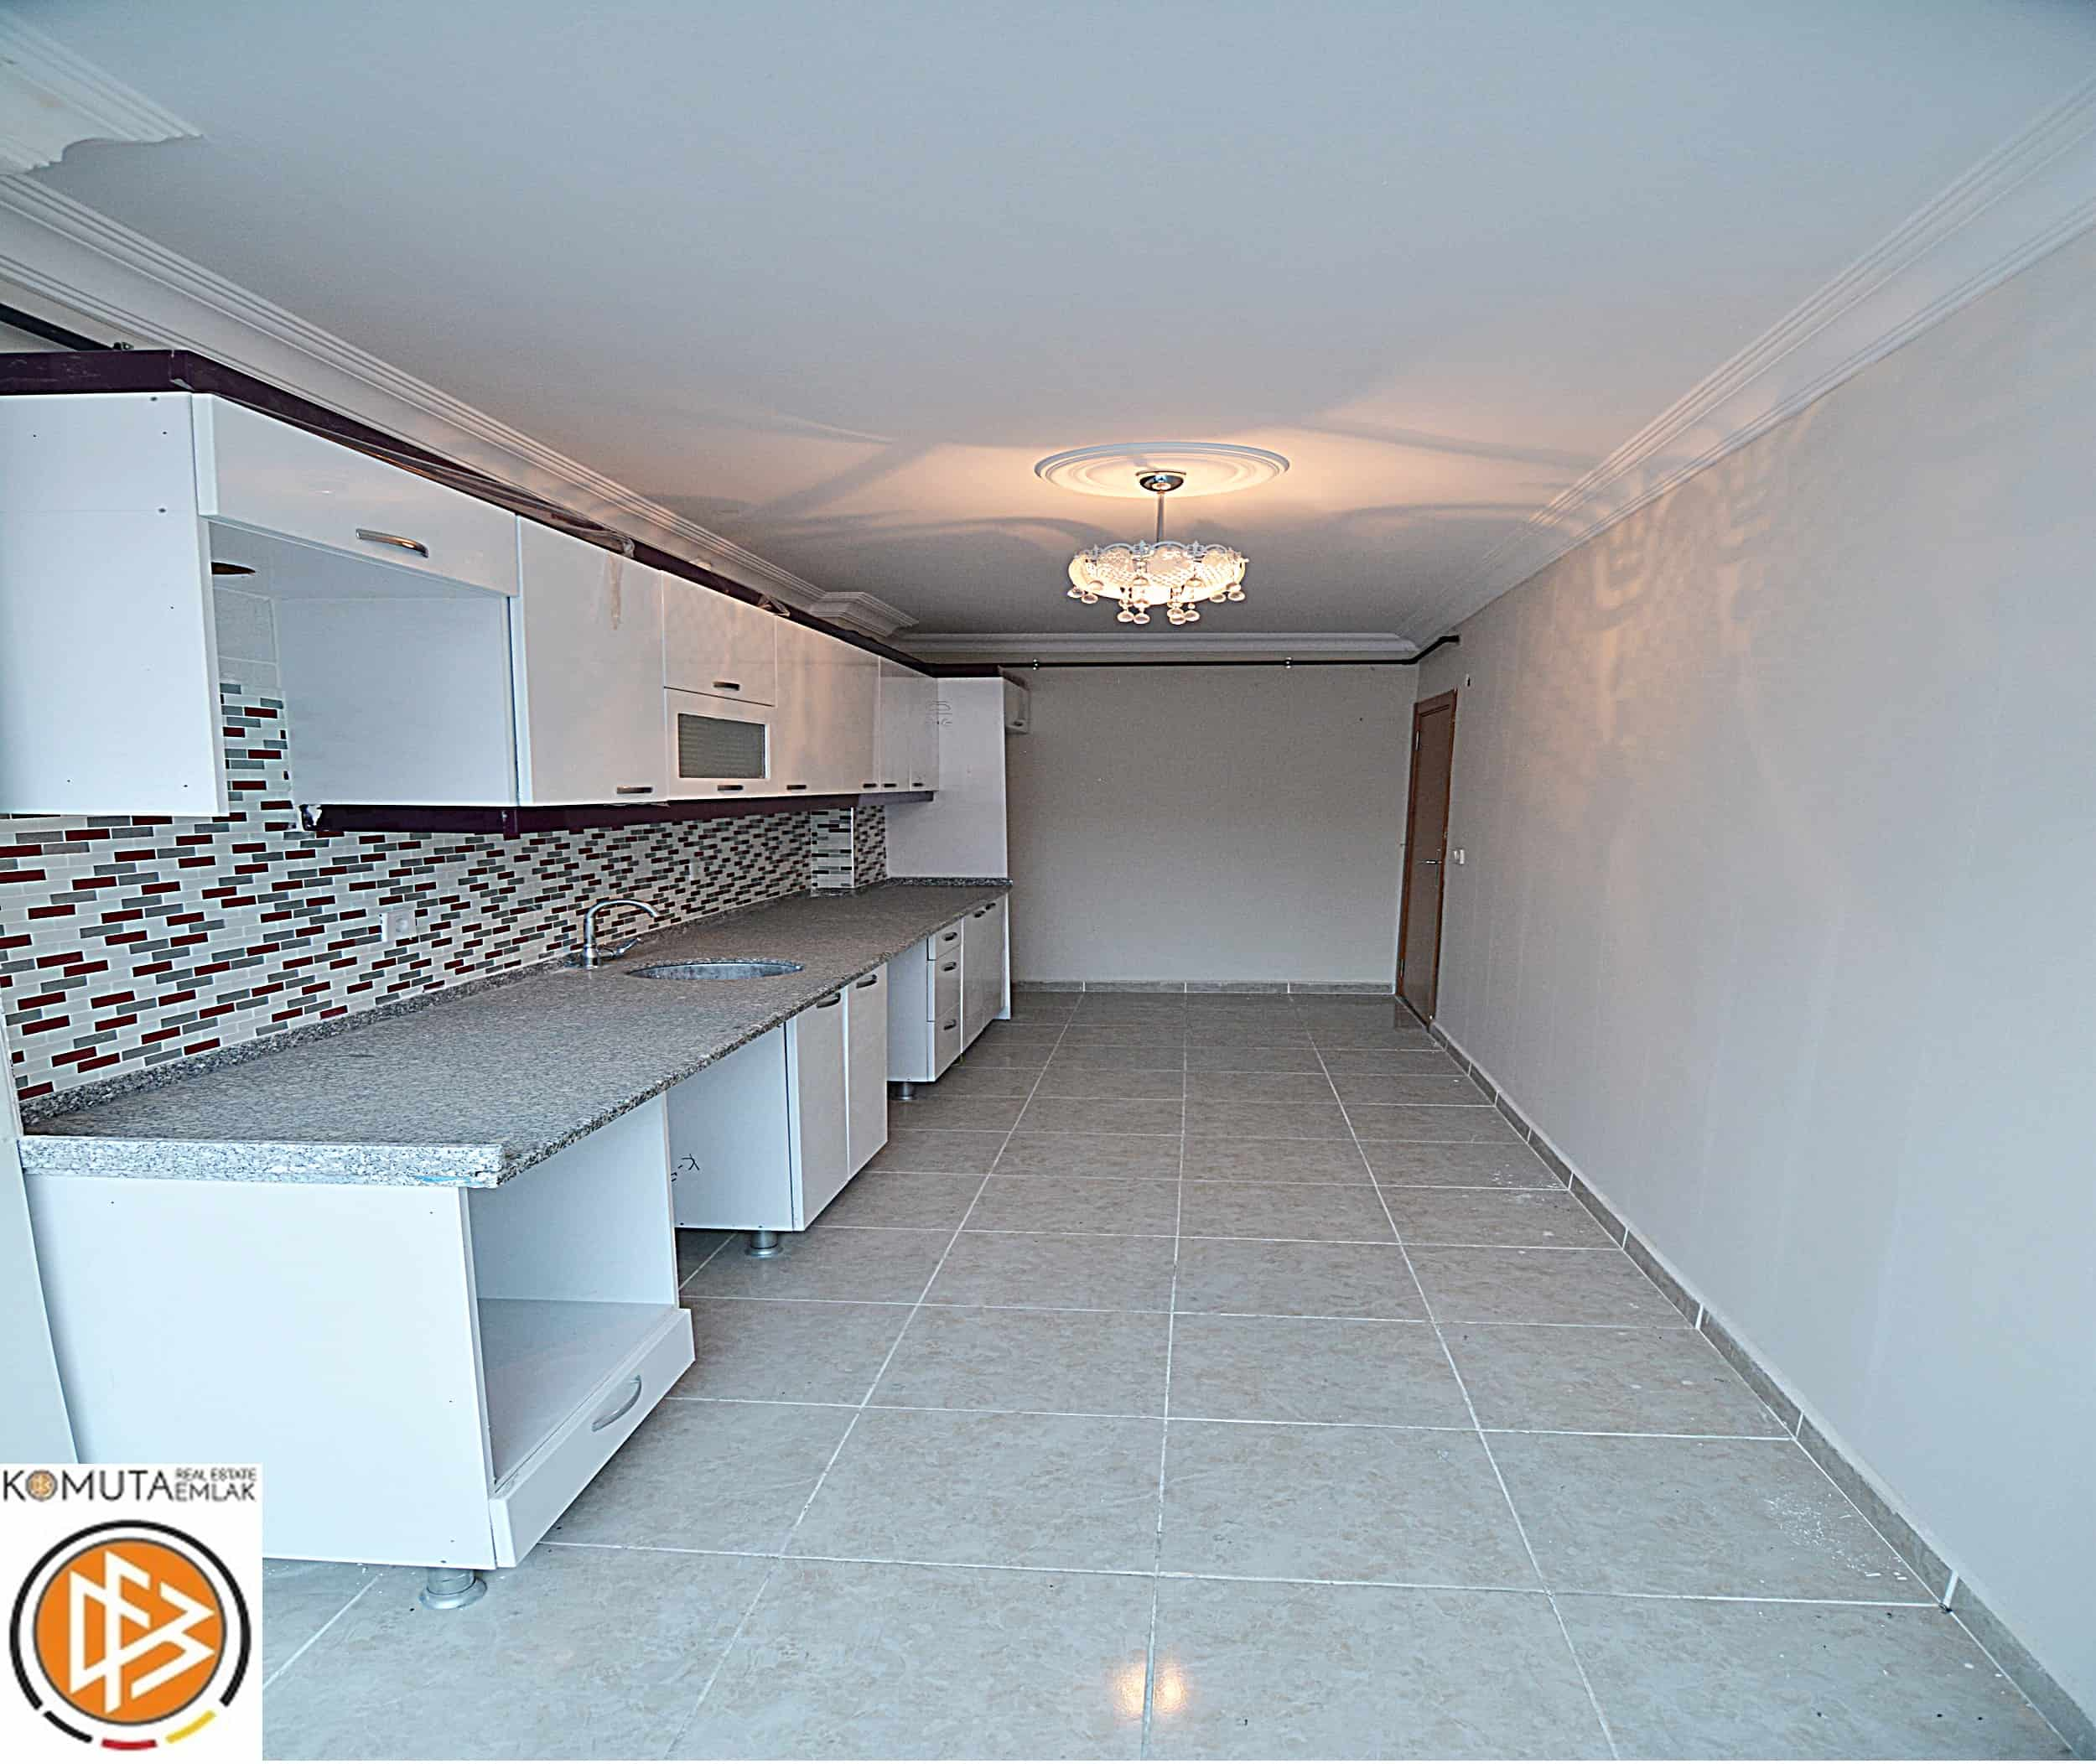 Duplex Apartments For Rent: 3+2 Duplex Apartment For Sale In Beylikduzu Istanbul